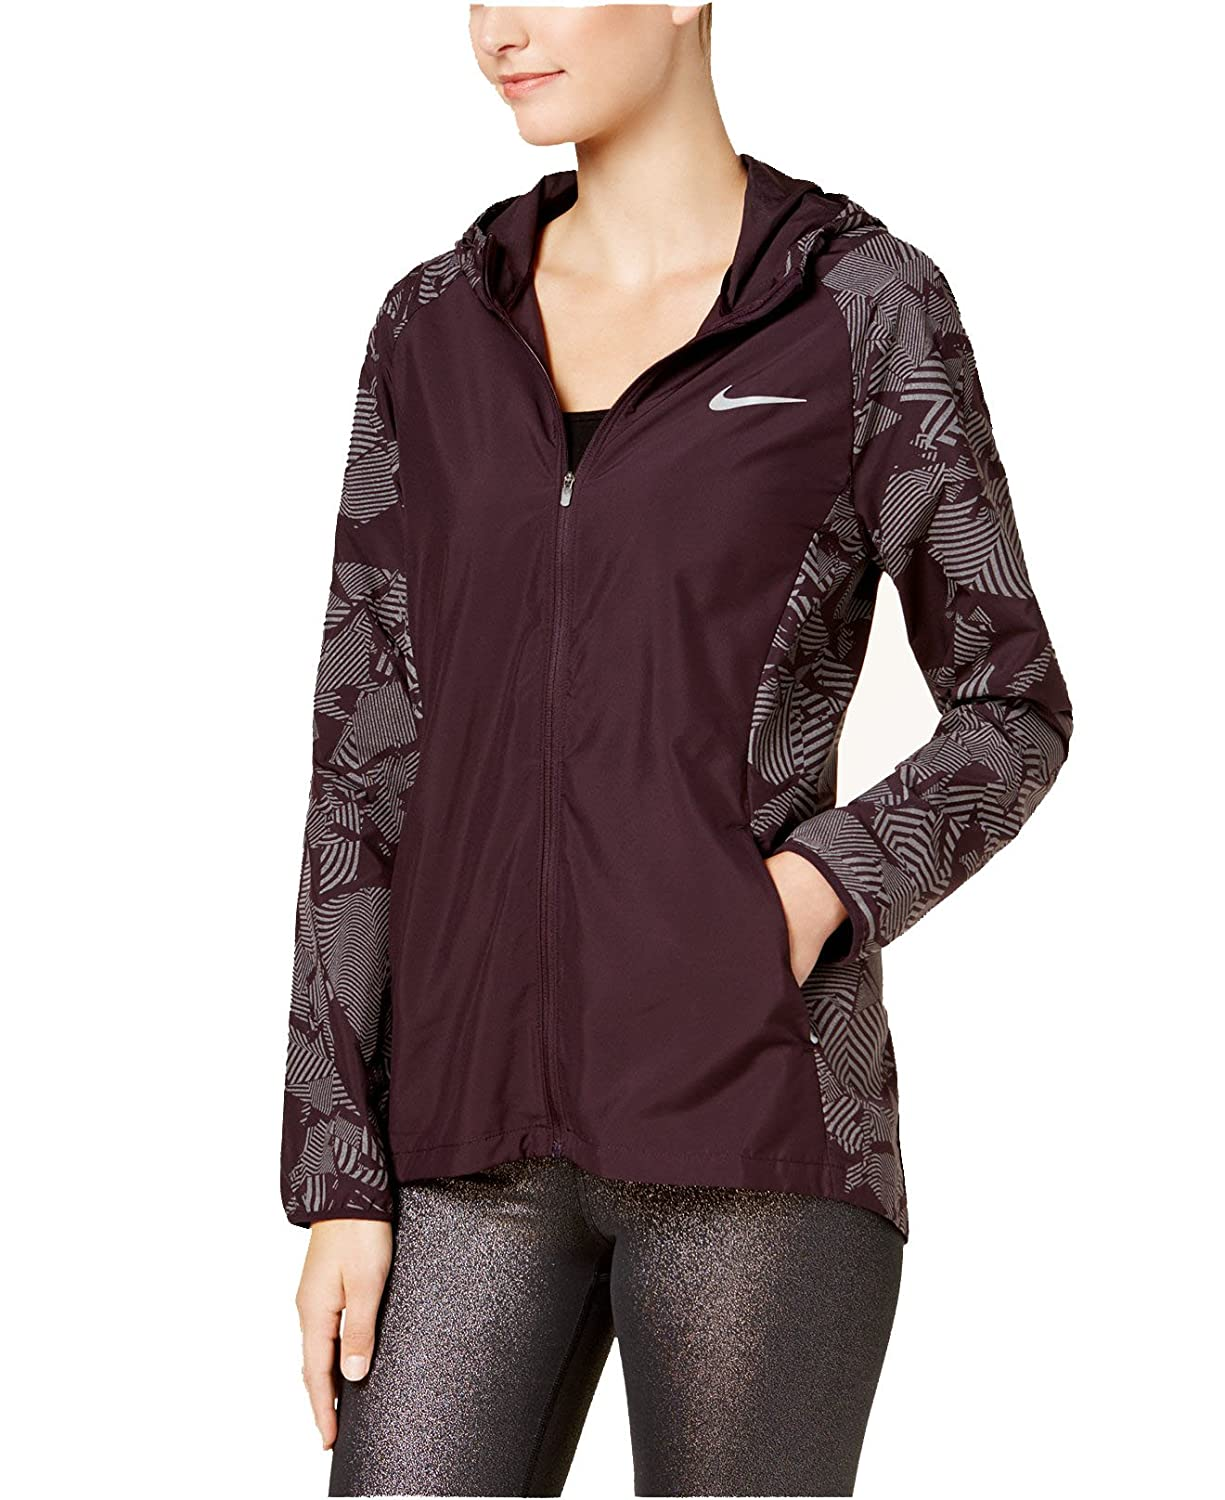 4f523bd6f5 Online Cheap wholesale NIKE Womens Essential Flash Running Jacket Clothing  Suppliers